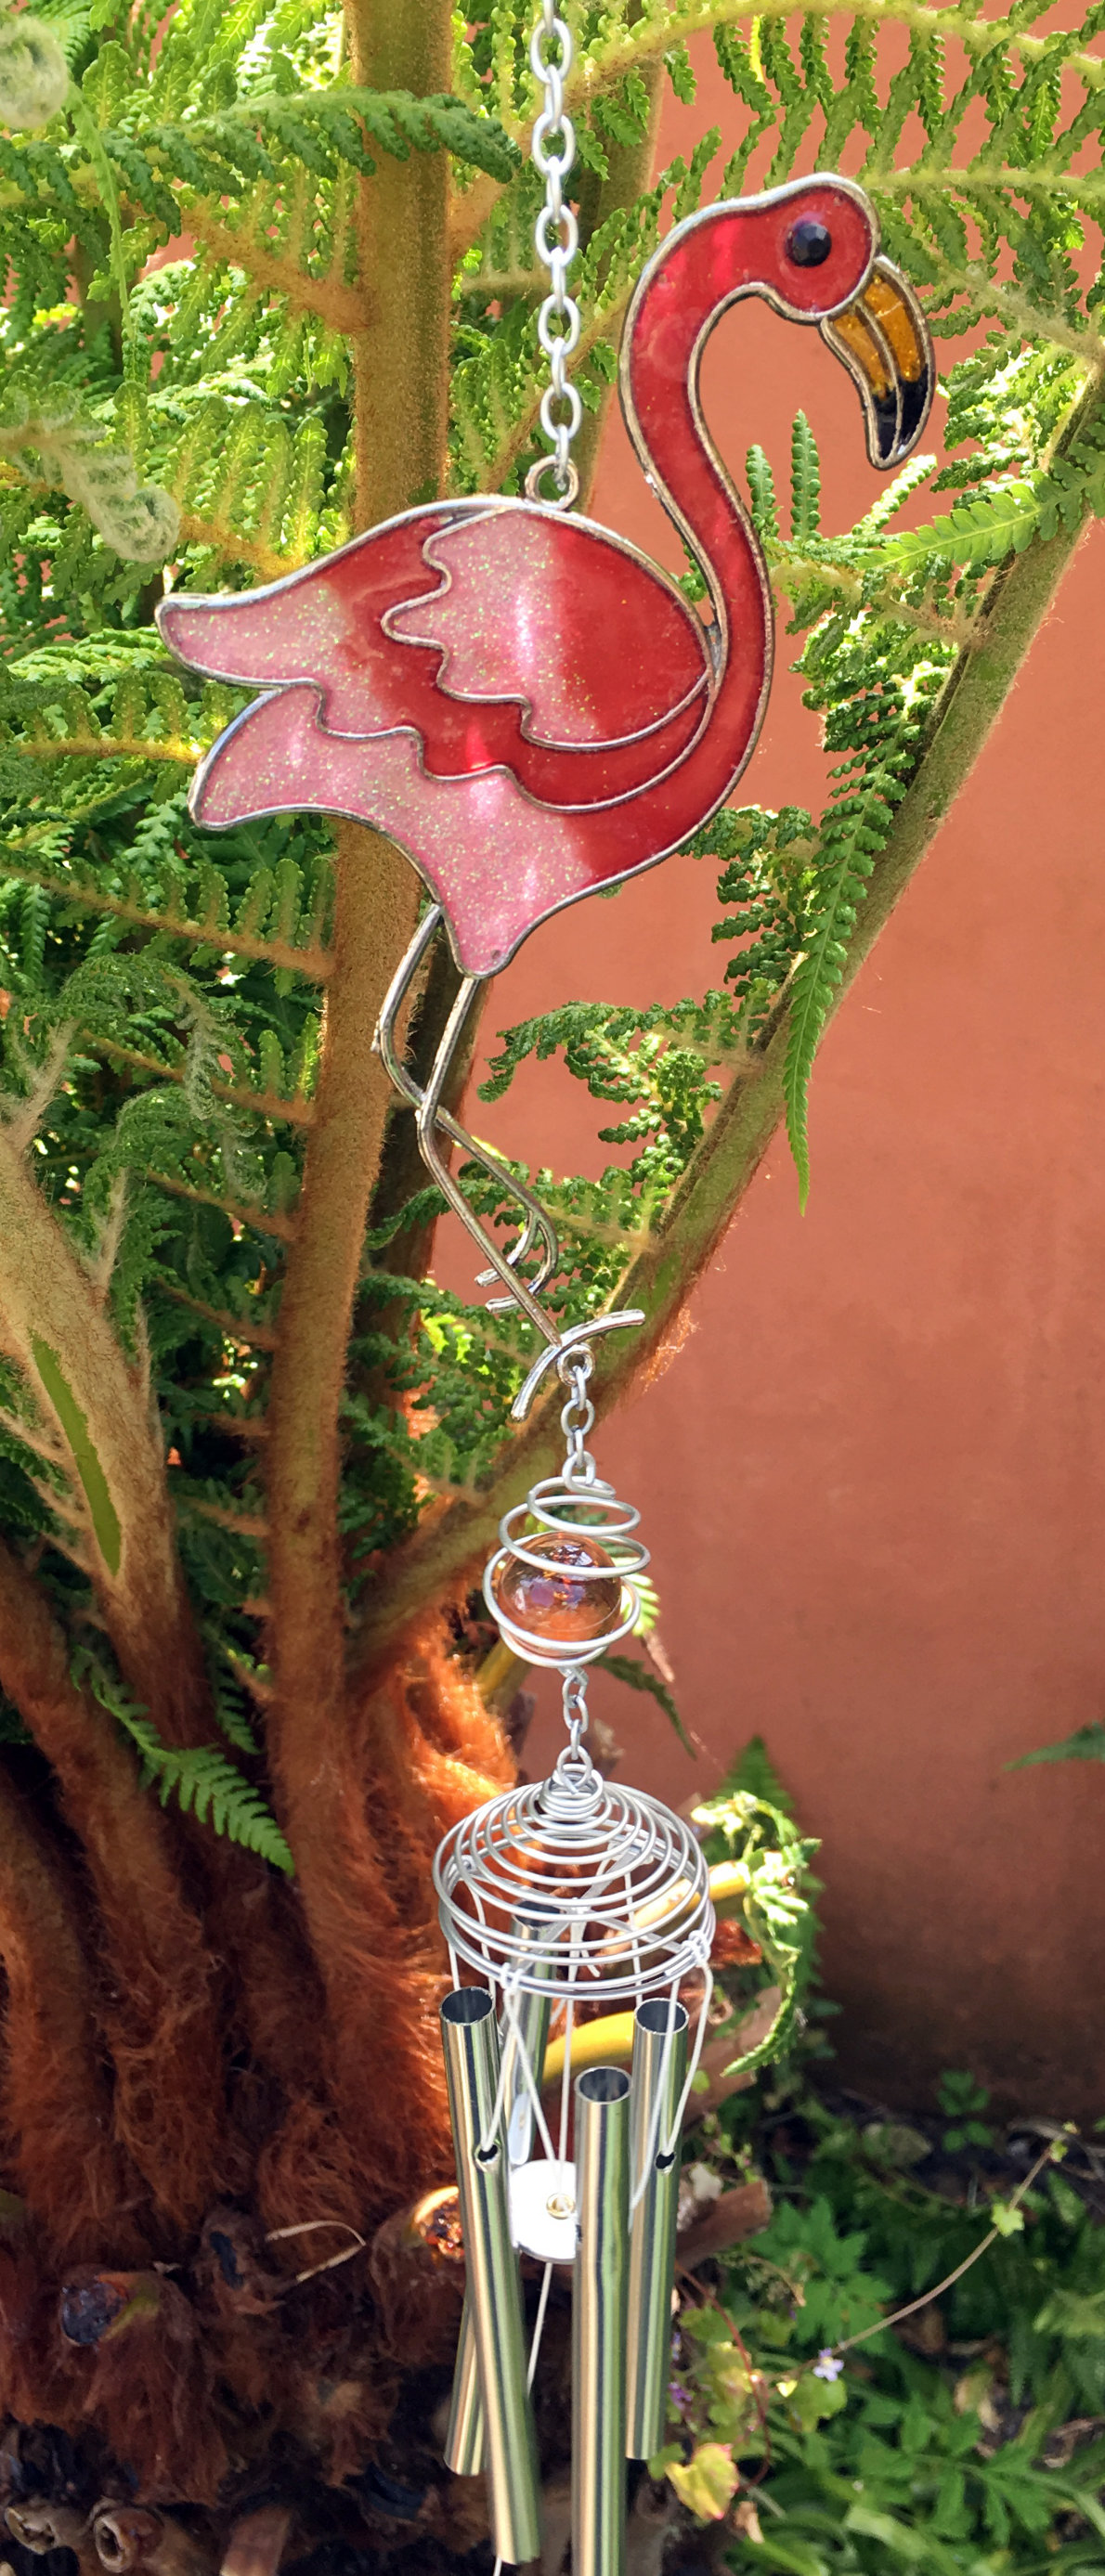 Large-Metal-amp-Glass-Hanging-Sun-Catcher-Wind-Chime-Home-Garden-Decorations thumbnail 5